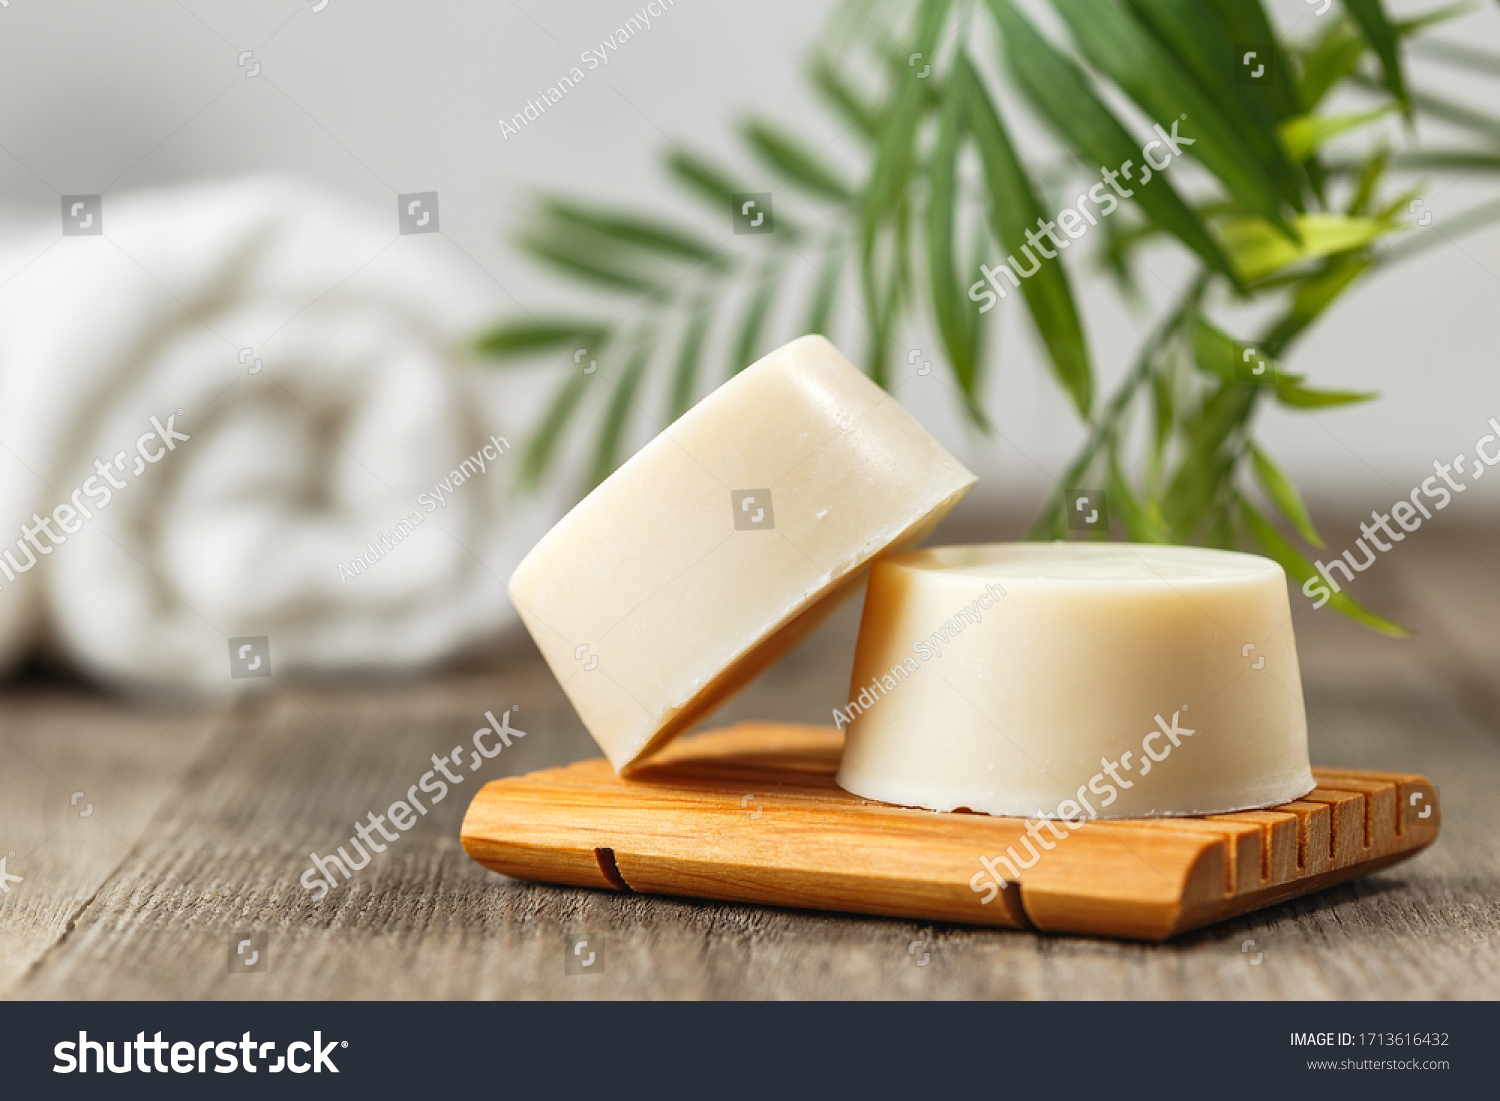 Handmade solid shampoo soap bar on wooden dish. Green leaves above and towel on the background. Zero waste, eco friendly product #1713616432